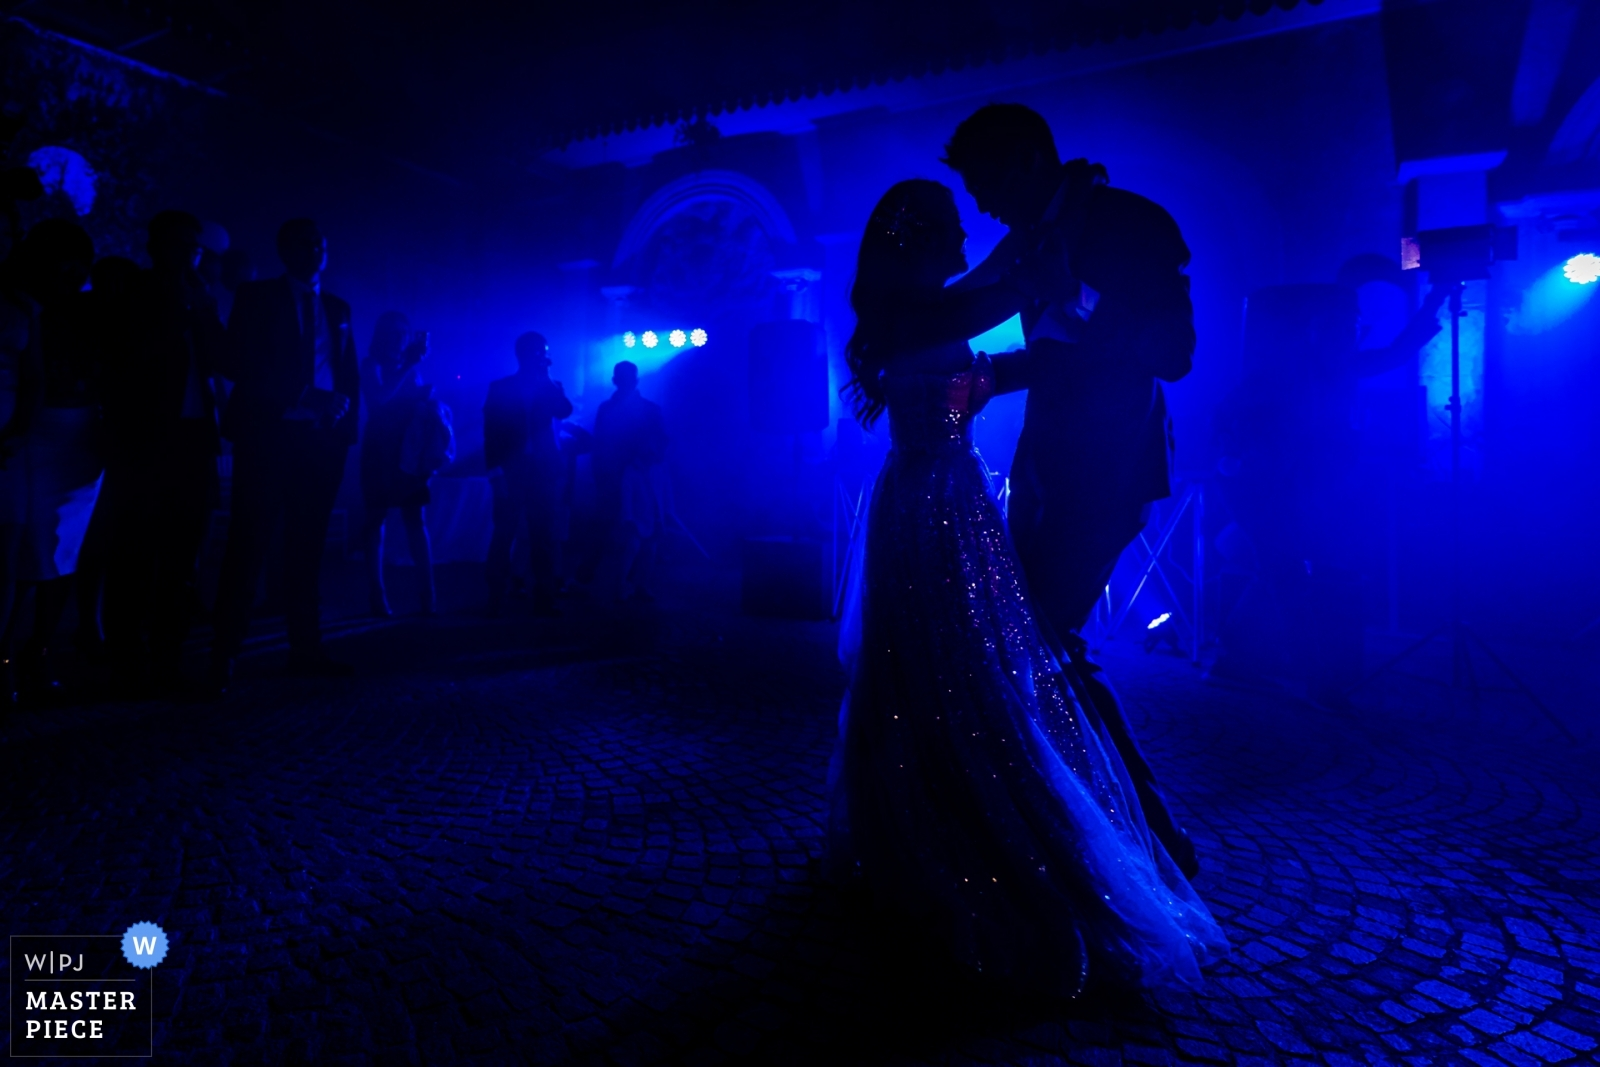 The silhouette of the bride and the groom having their first dance as newly wed. - Taipei, Taiwan Wedding Photography -  | Castello di Torcrescenza Roma Nord, Italy